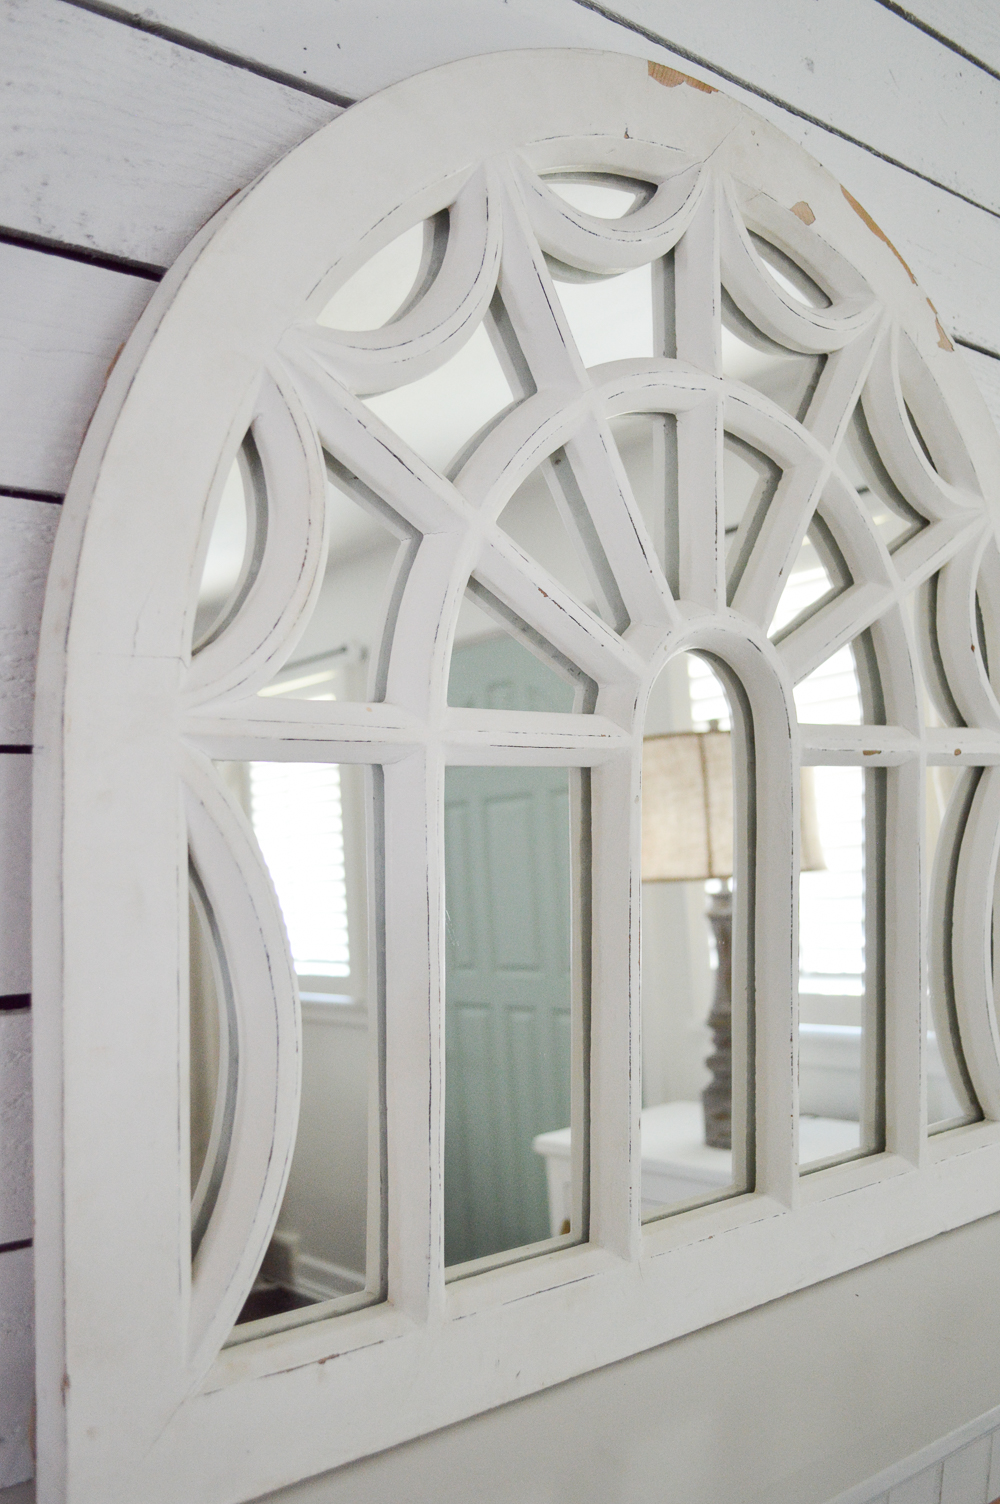 My New Improved Aqua Front Door - www.foxhollowcottage.com - White wood arched mirror